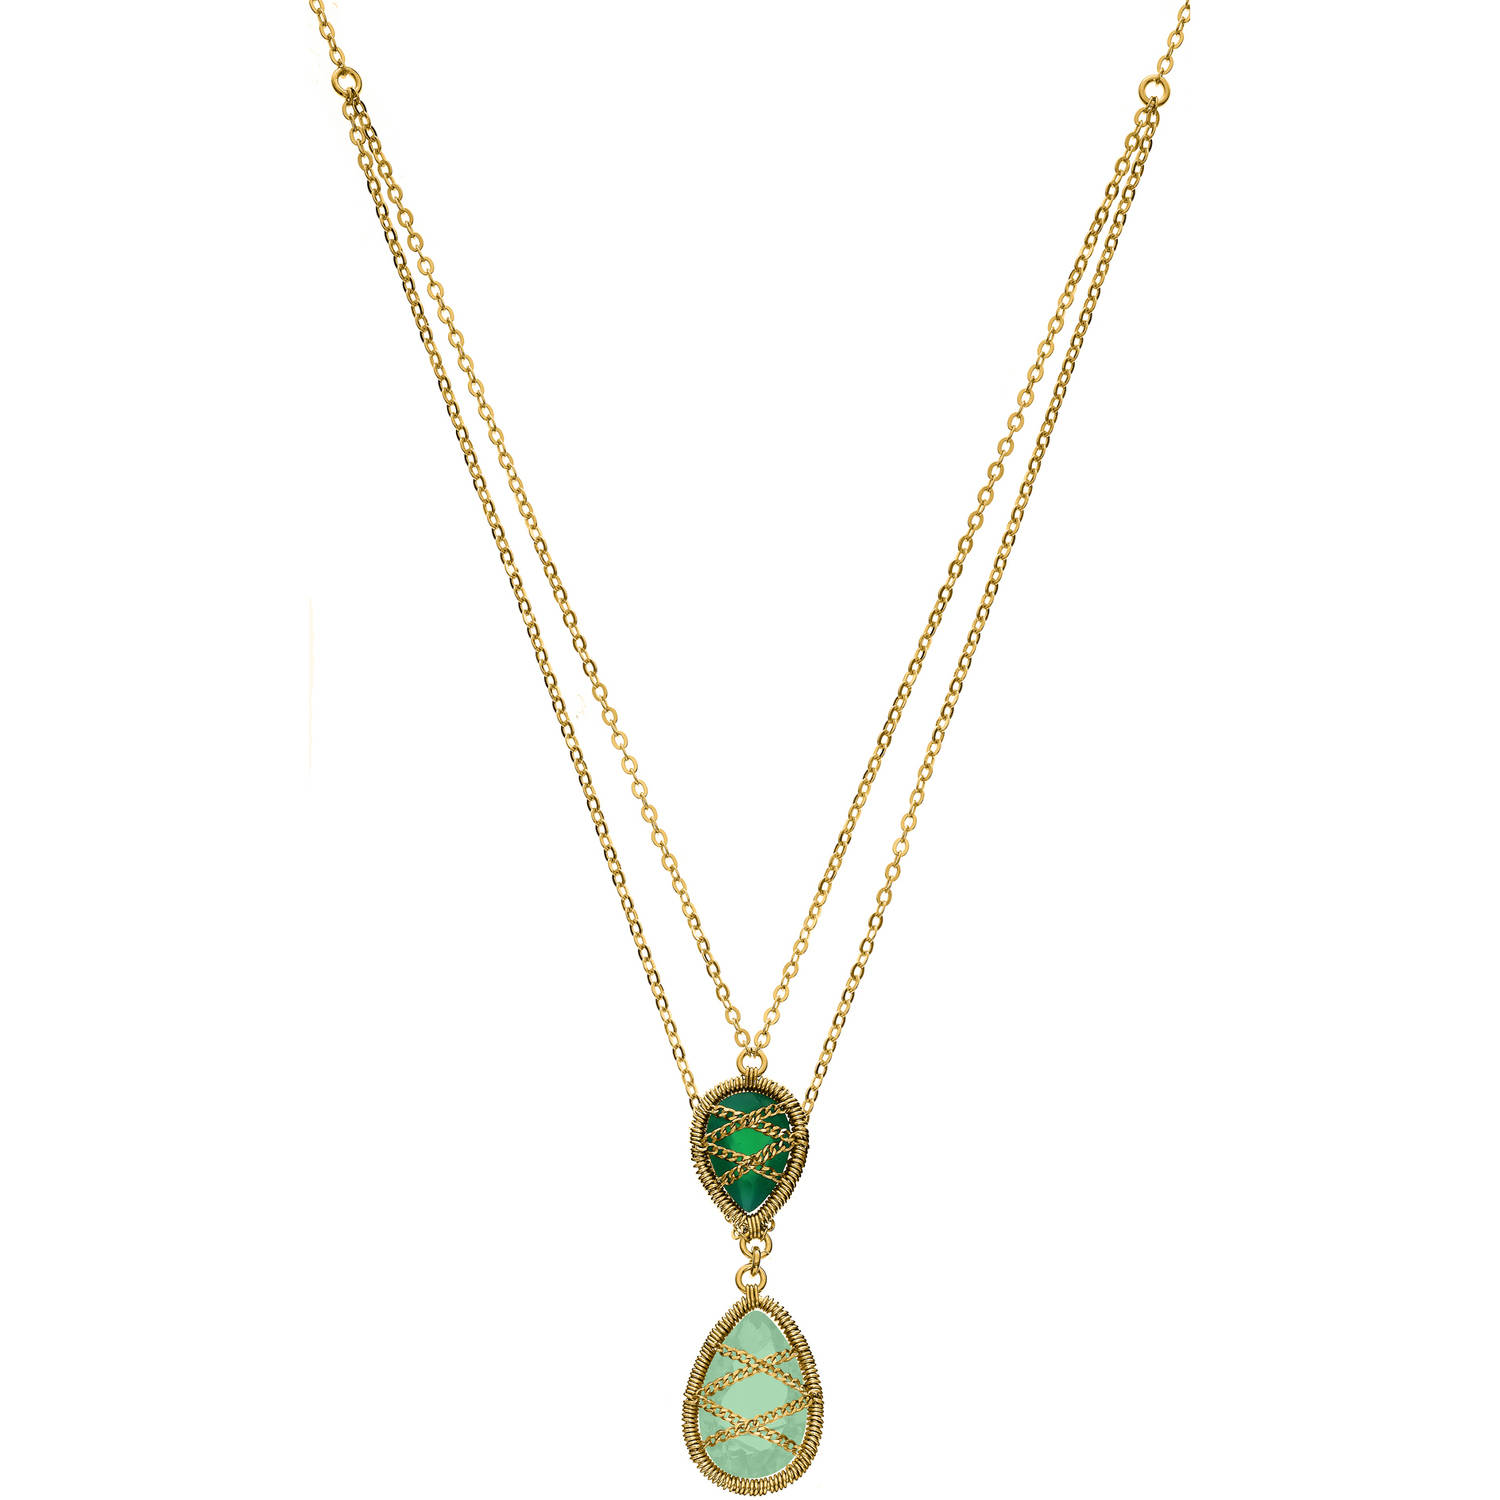 Image of 5th & Main 18kt Gold over Sterling Silver Hand-Wrapped Double Chain Chalcedony and Peridot Stone Pendant Necklace